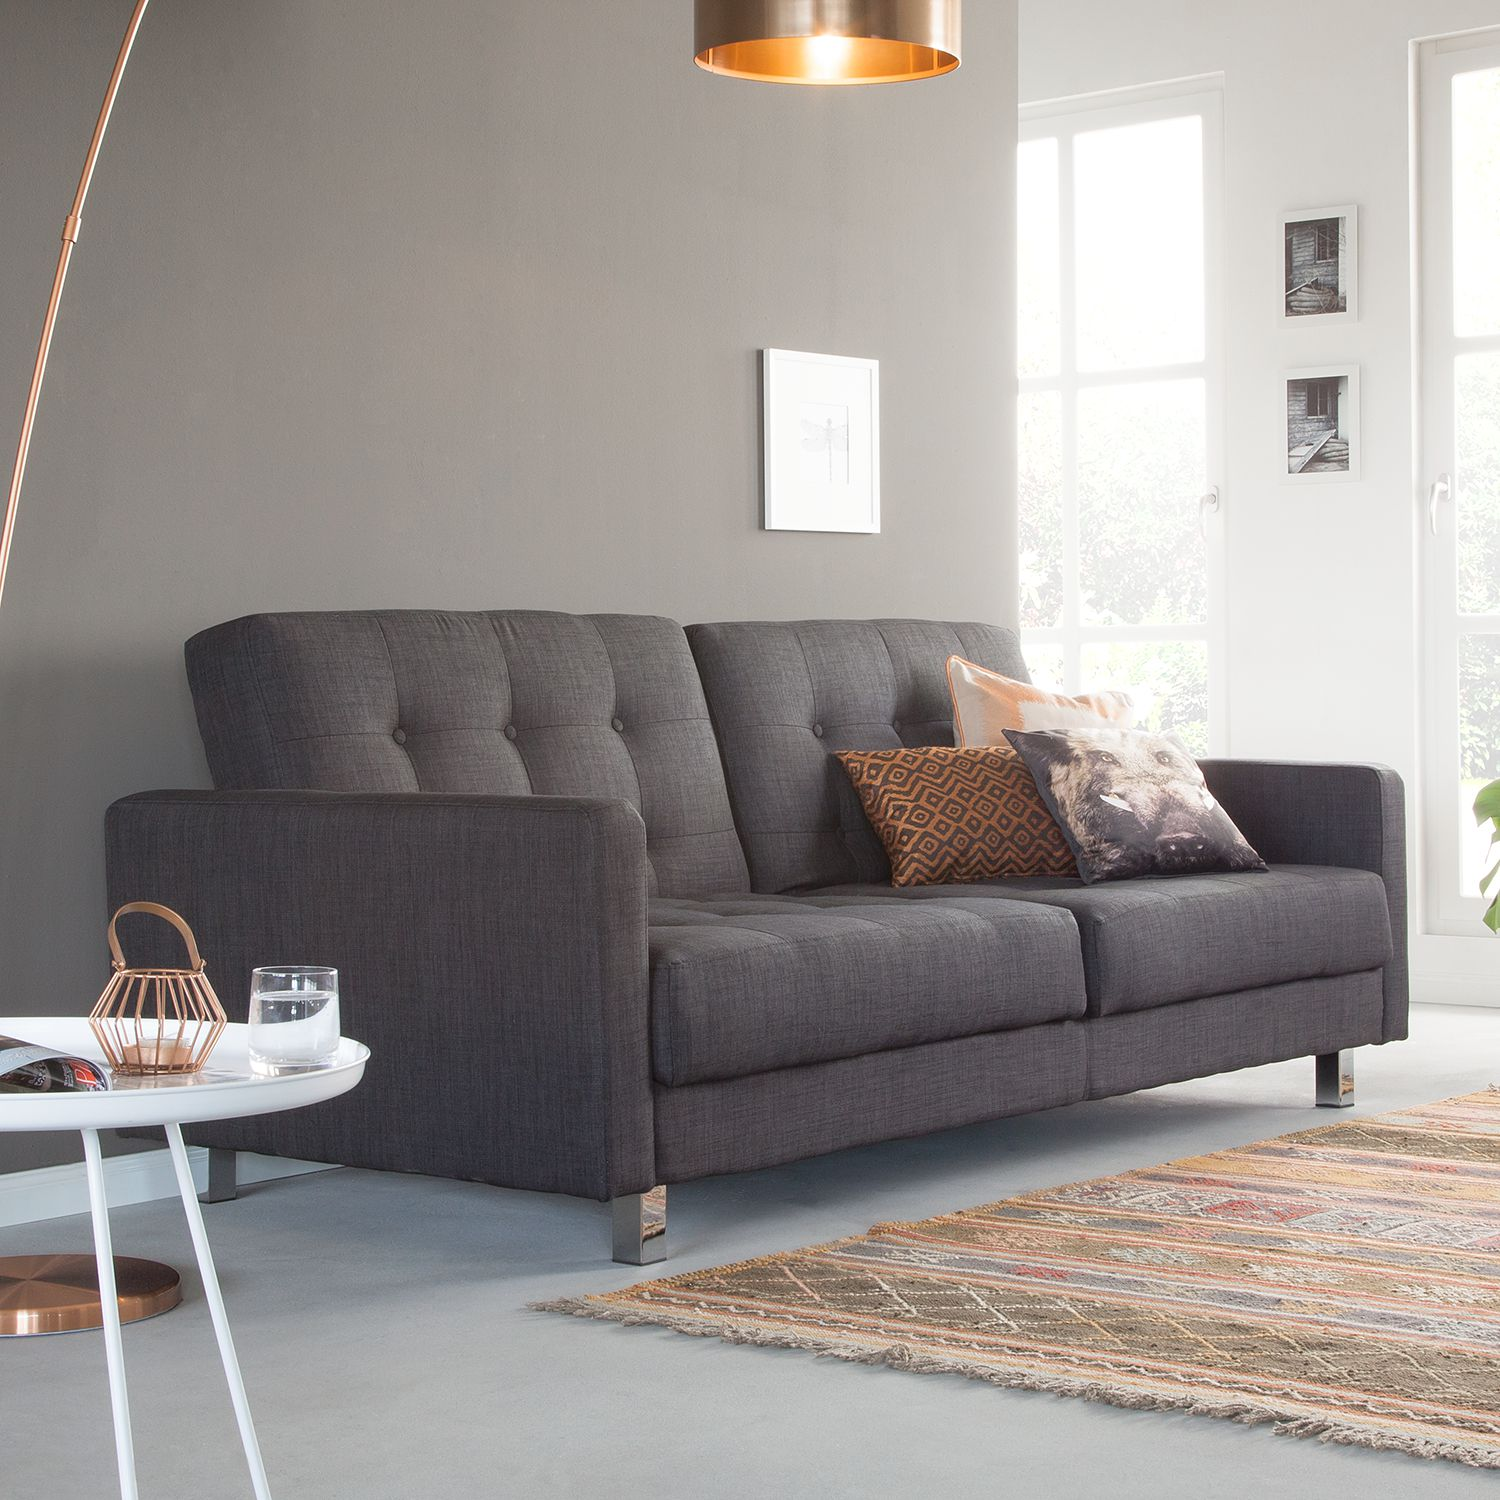 Awesome Design Armsessel Schlafcouch Flop Images - Ridgewayng.com ...